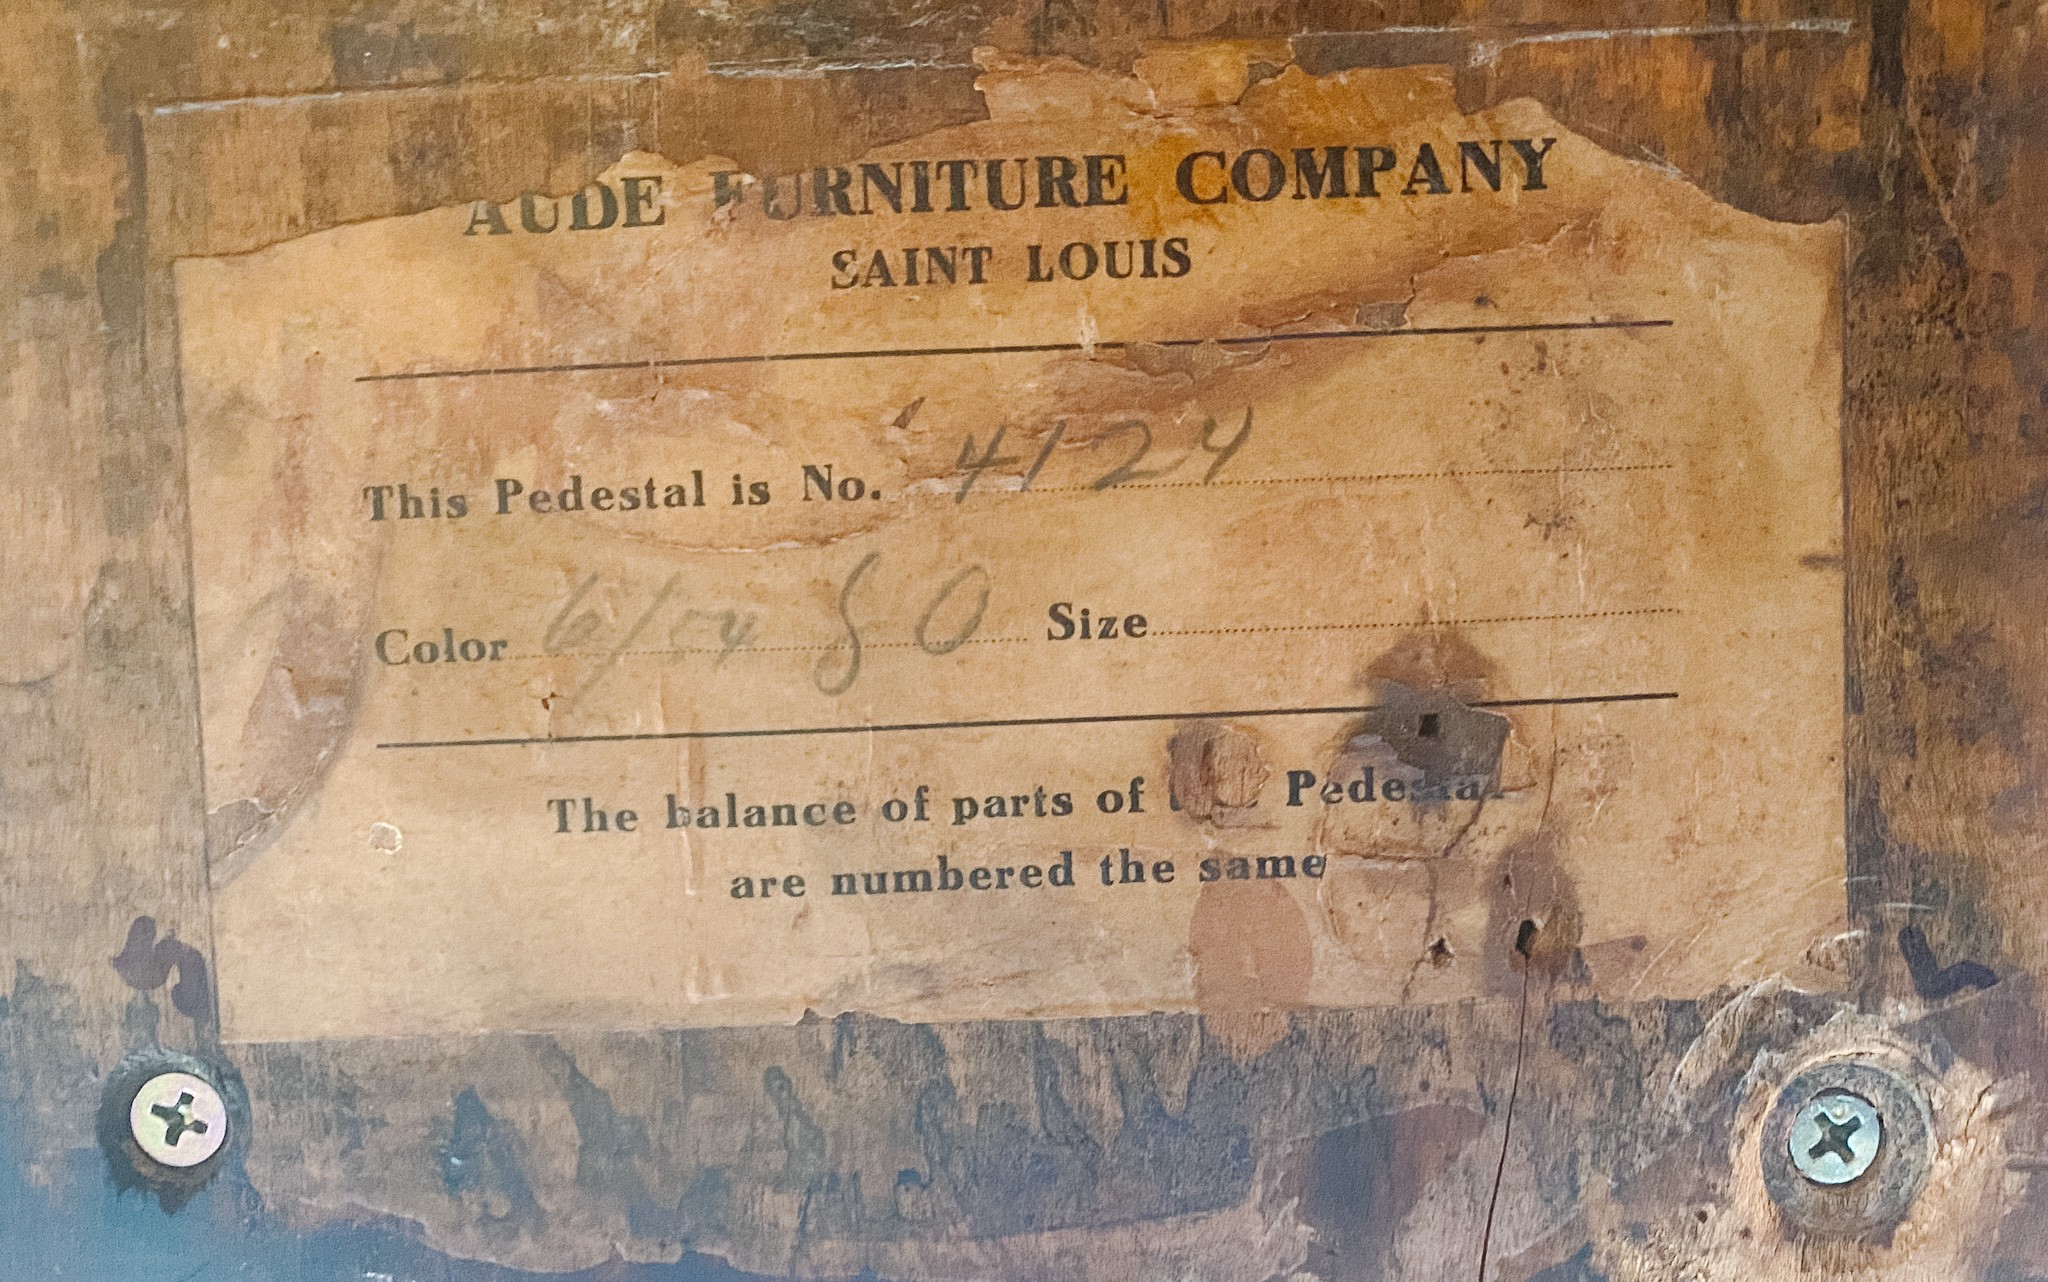 An aged, weathered paper label on a piece of furniture.